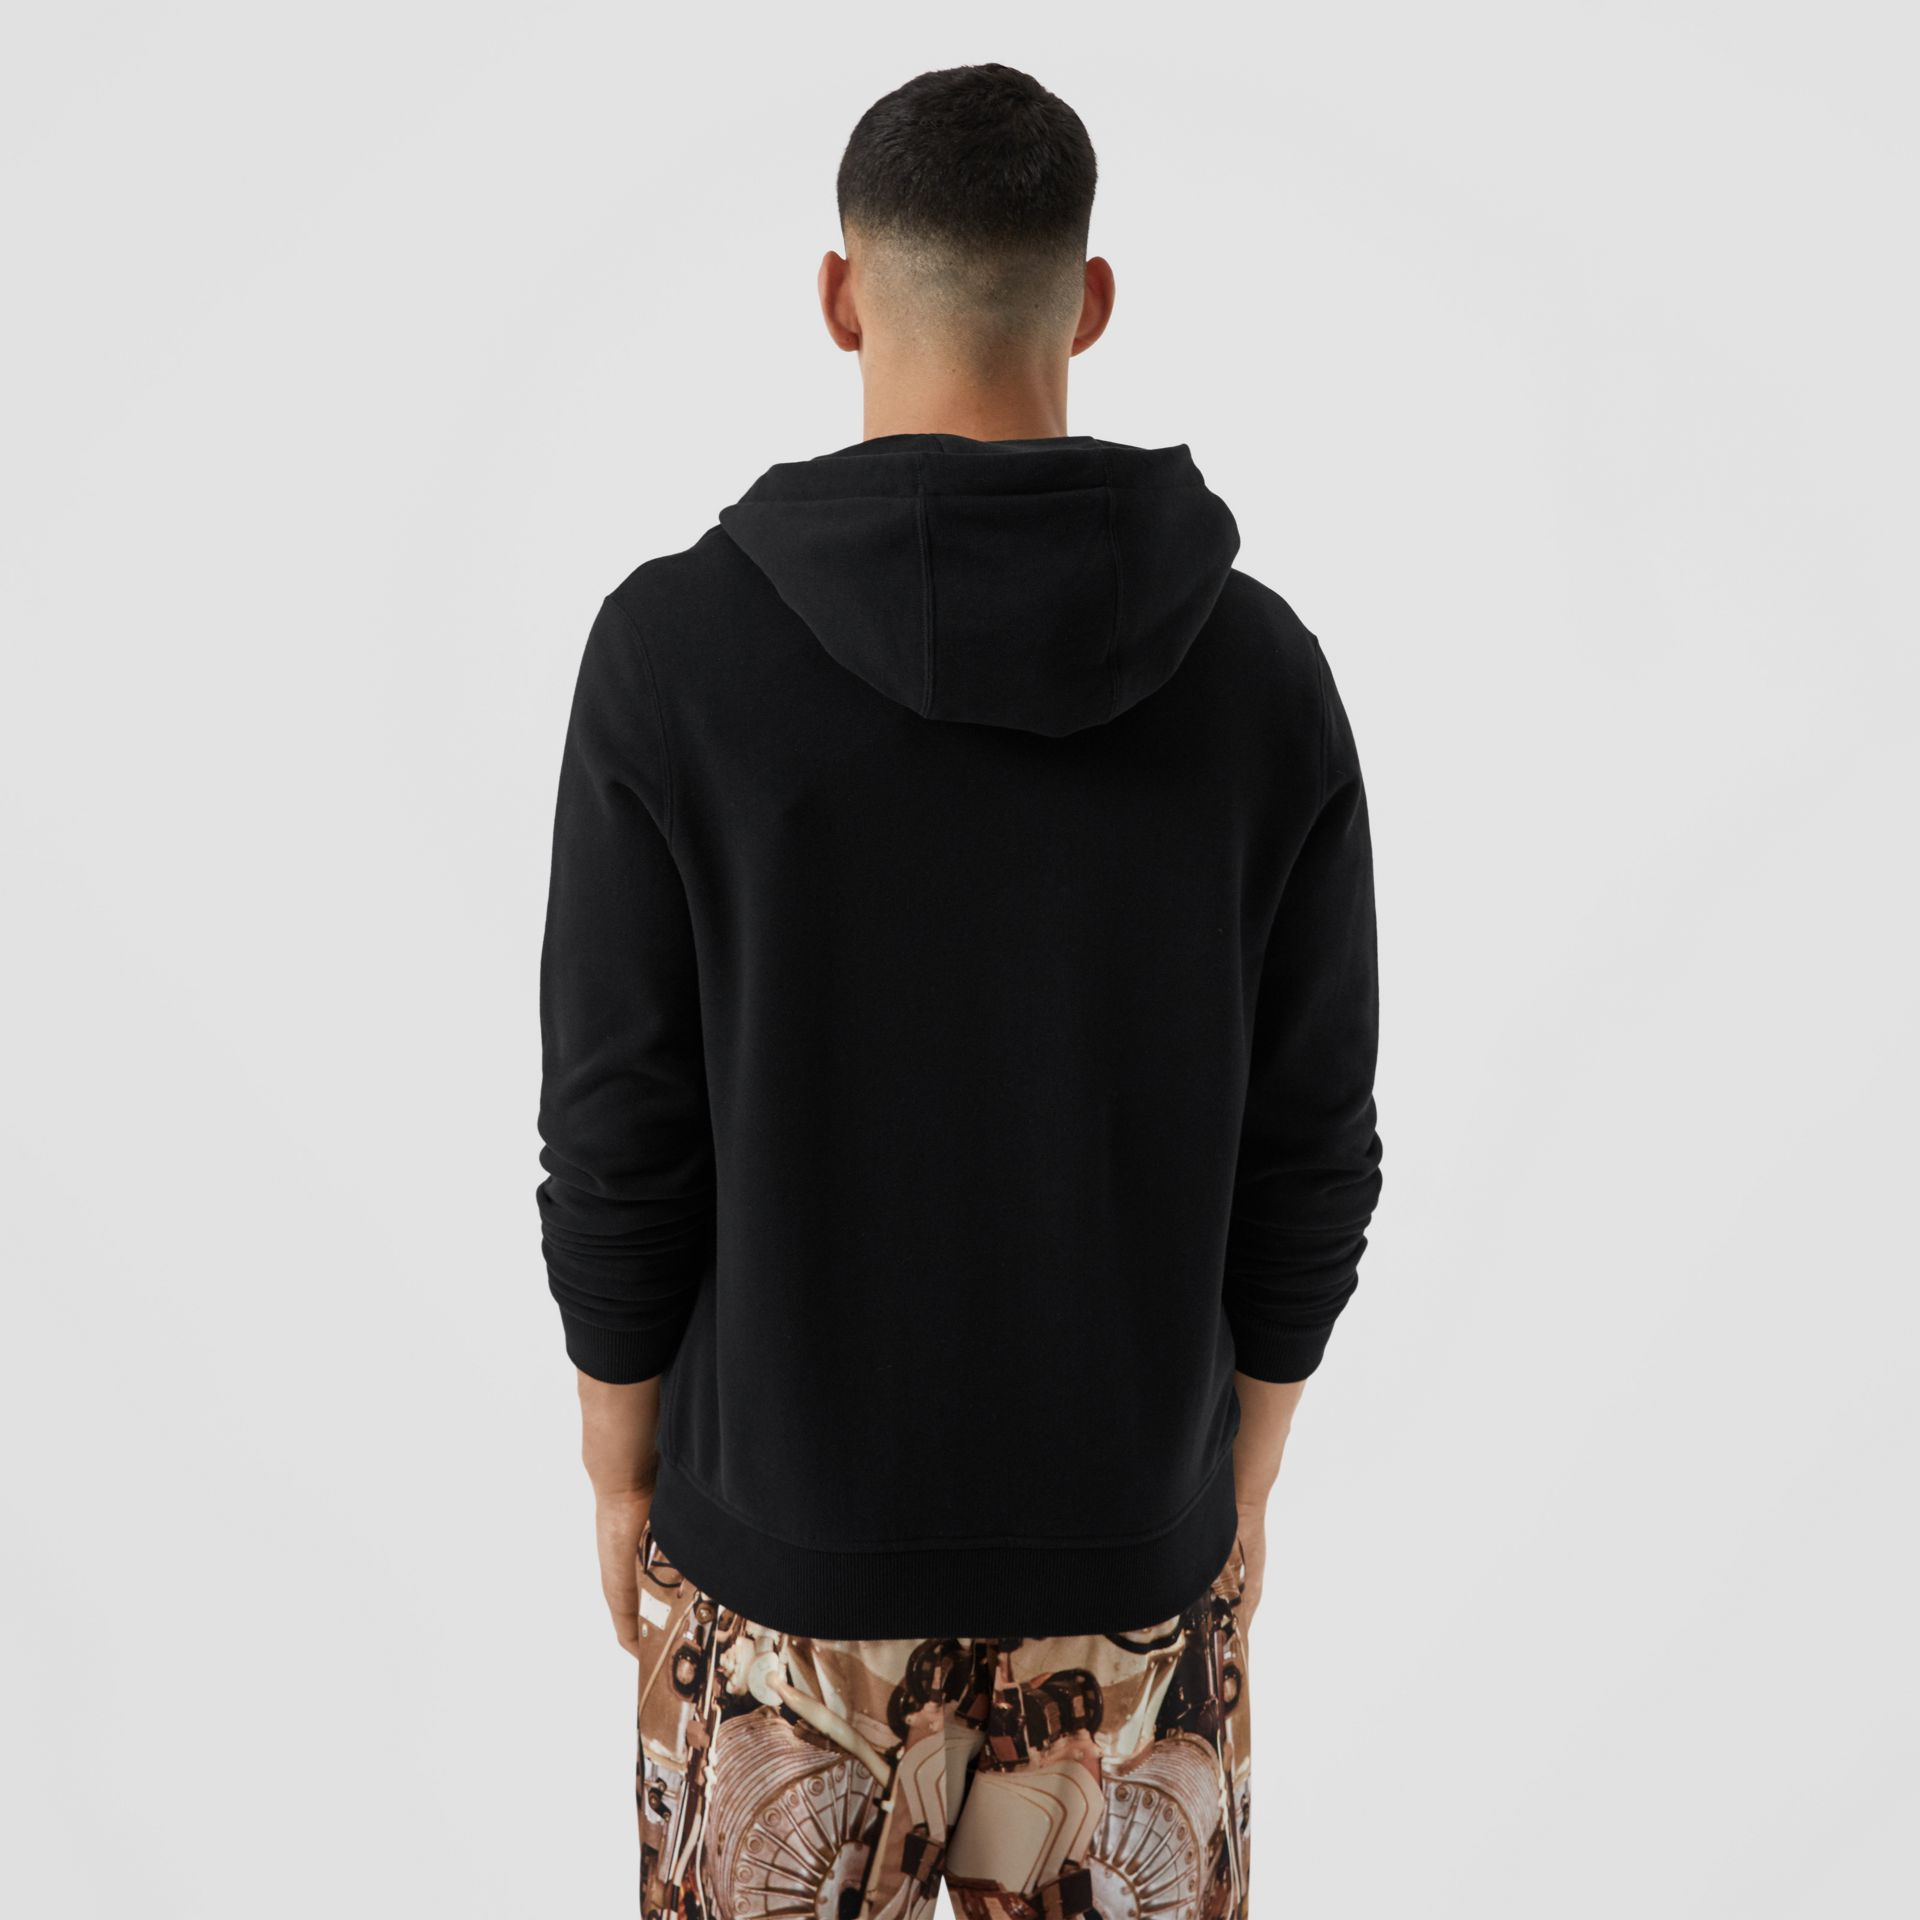 Contrast Logo Graphic Cotton Hooded Top in Black - Men | Burberry - gallery image 2